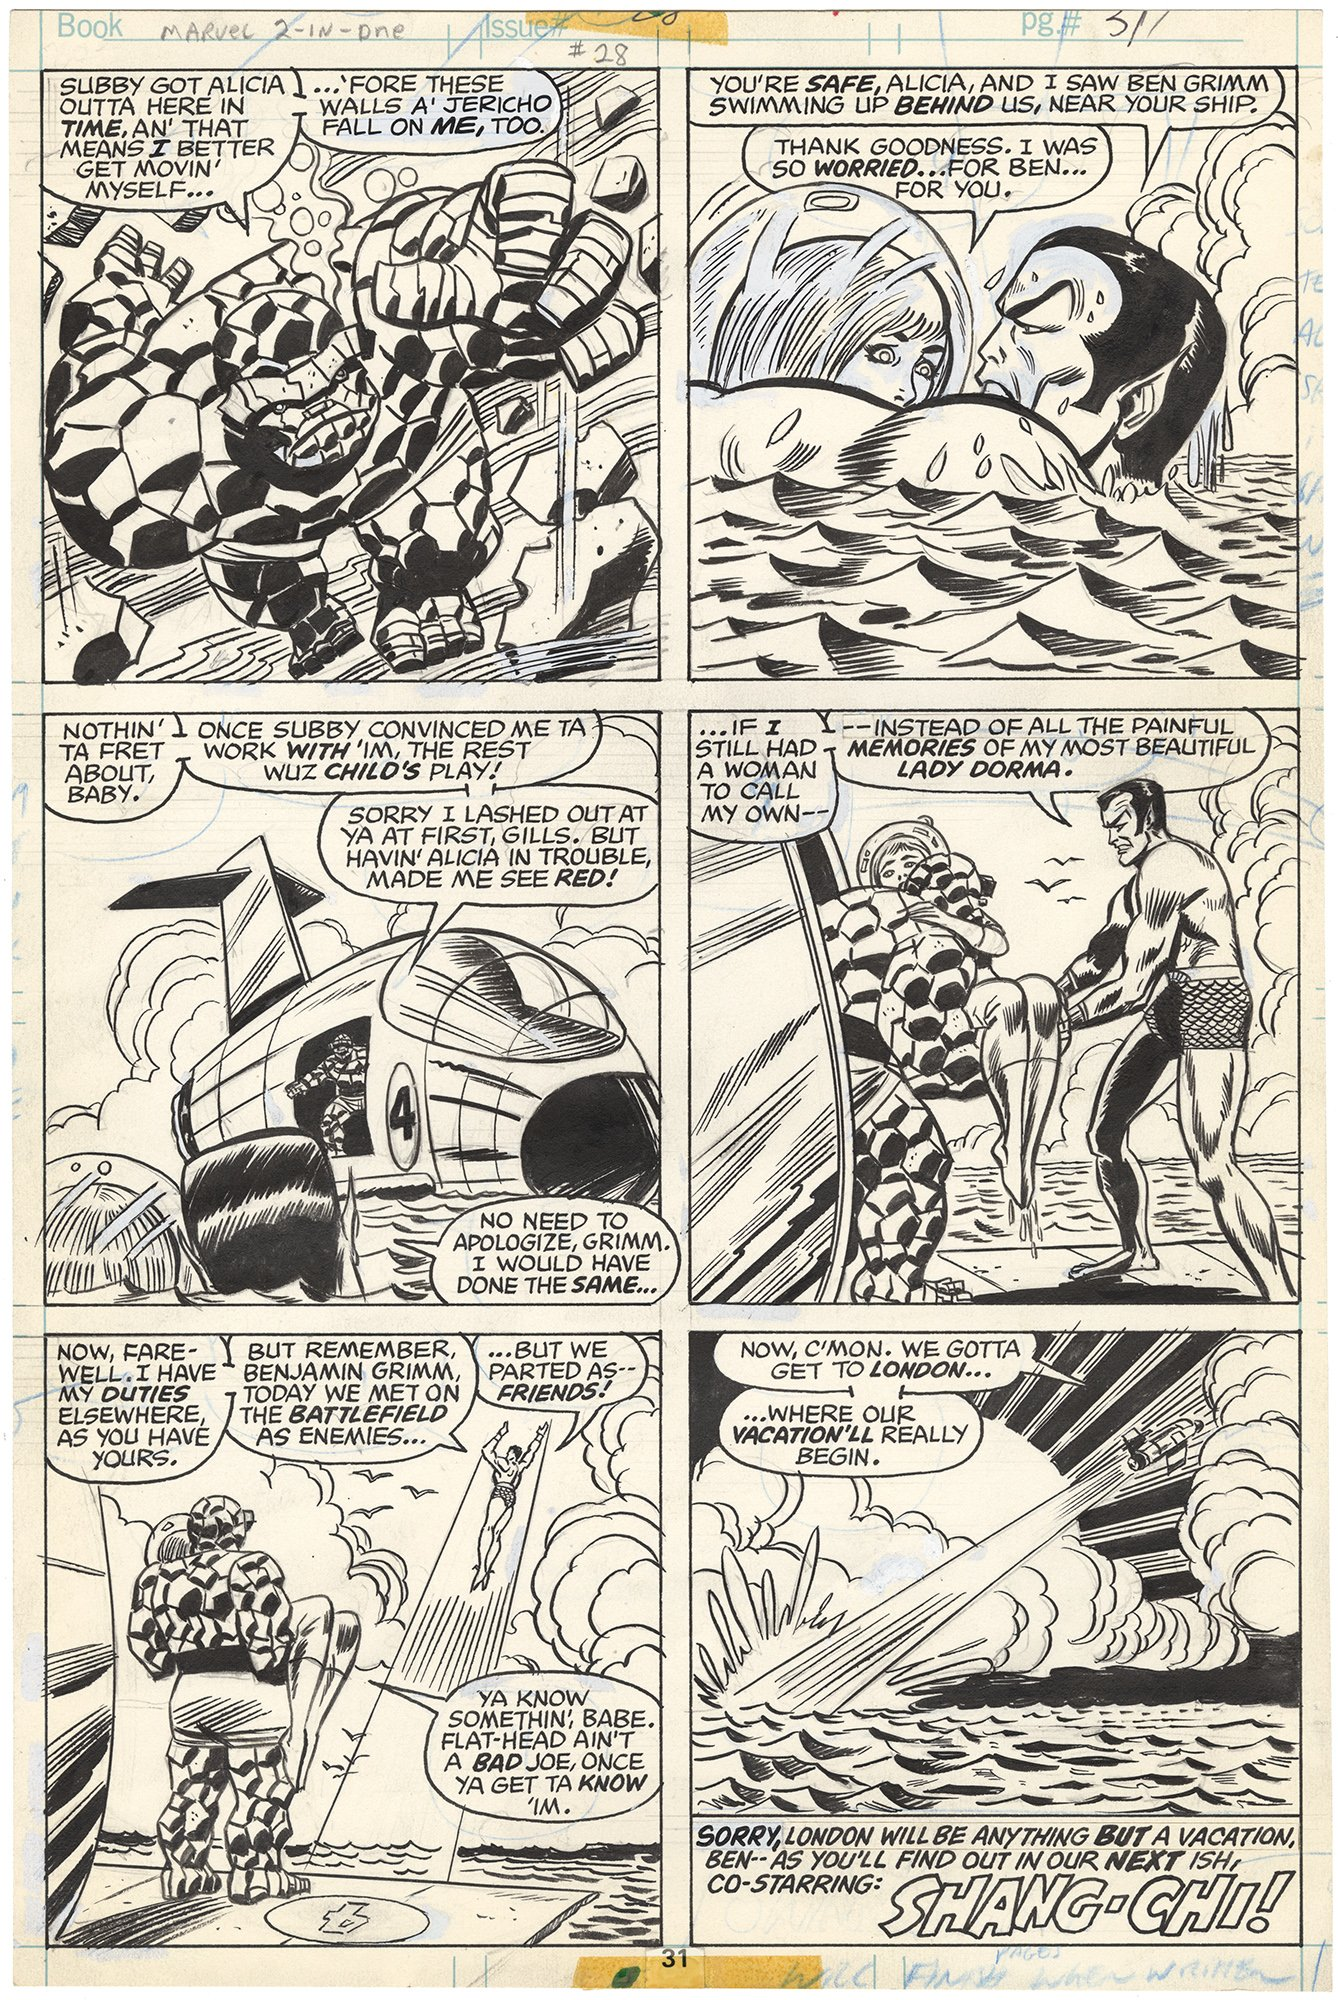 Marvel Two-in-One #28 p31